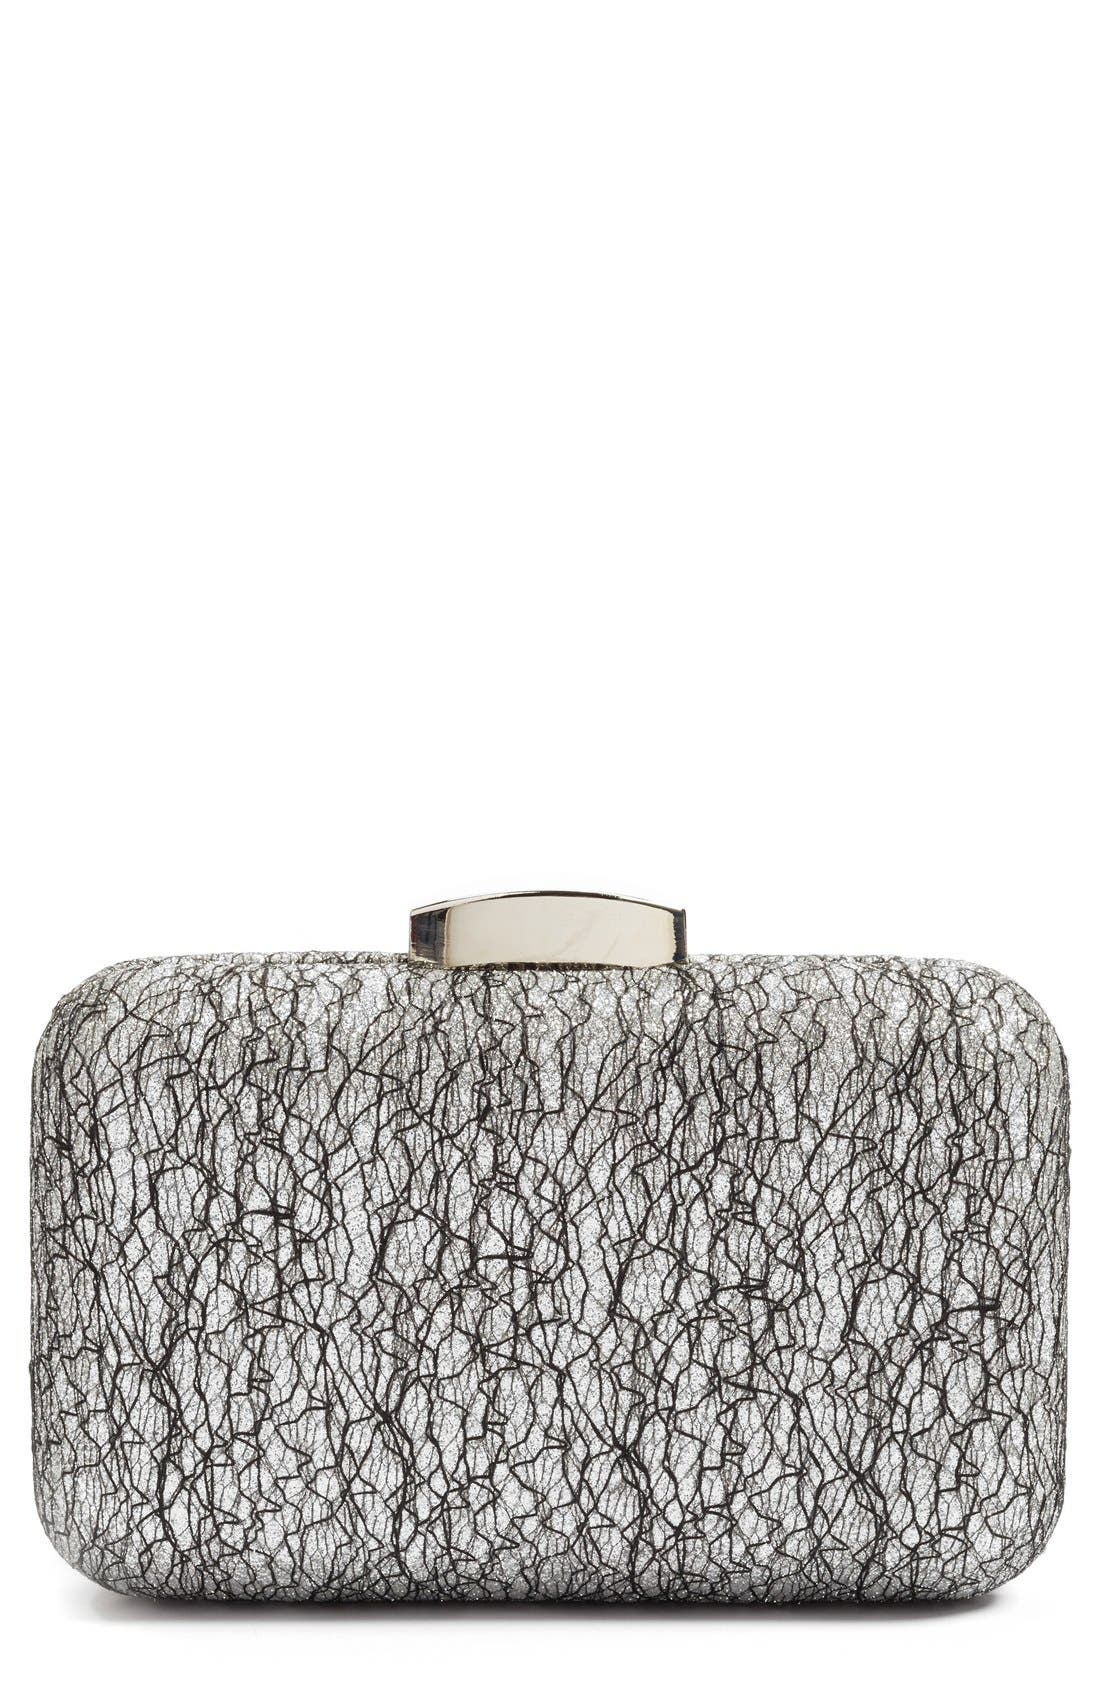 Alternate Image 1 Selected - Glint Abstract Lace Clutch